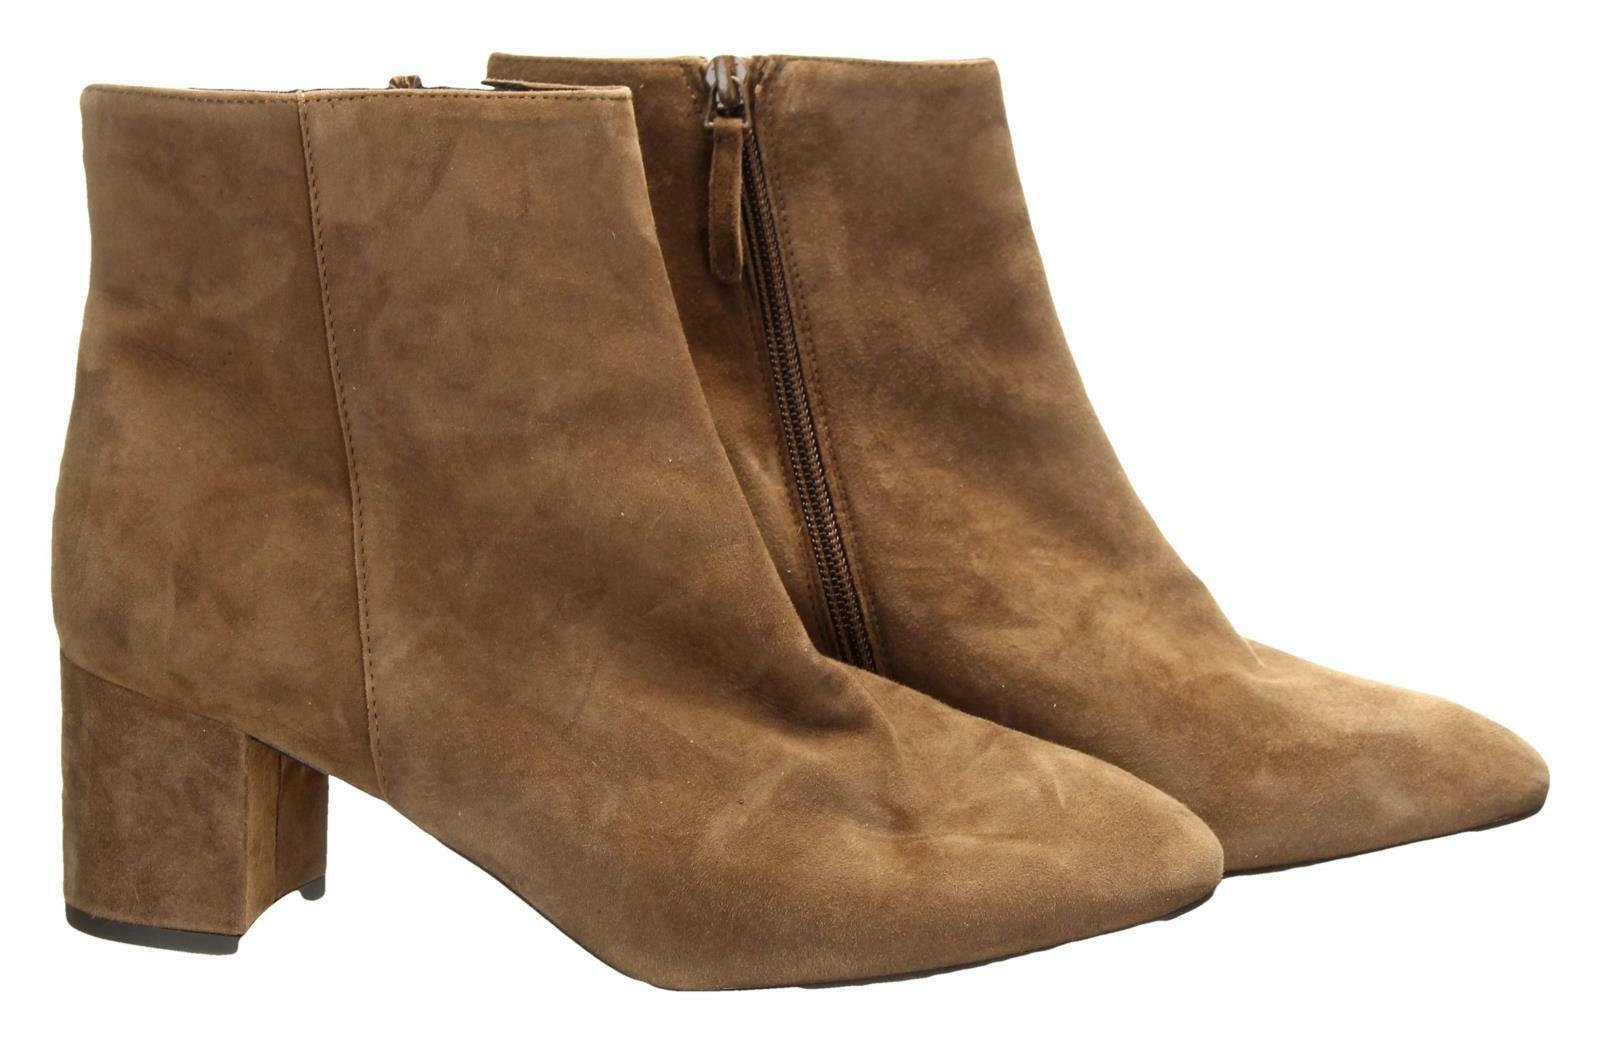 J Crew Hadley Suede Ankle Boots Booties Size 9.5 Pony Brown shoes Style G8118